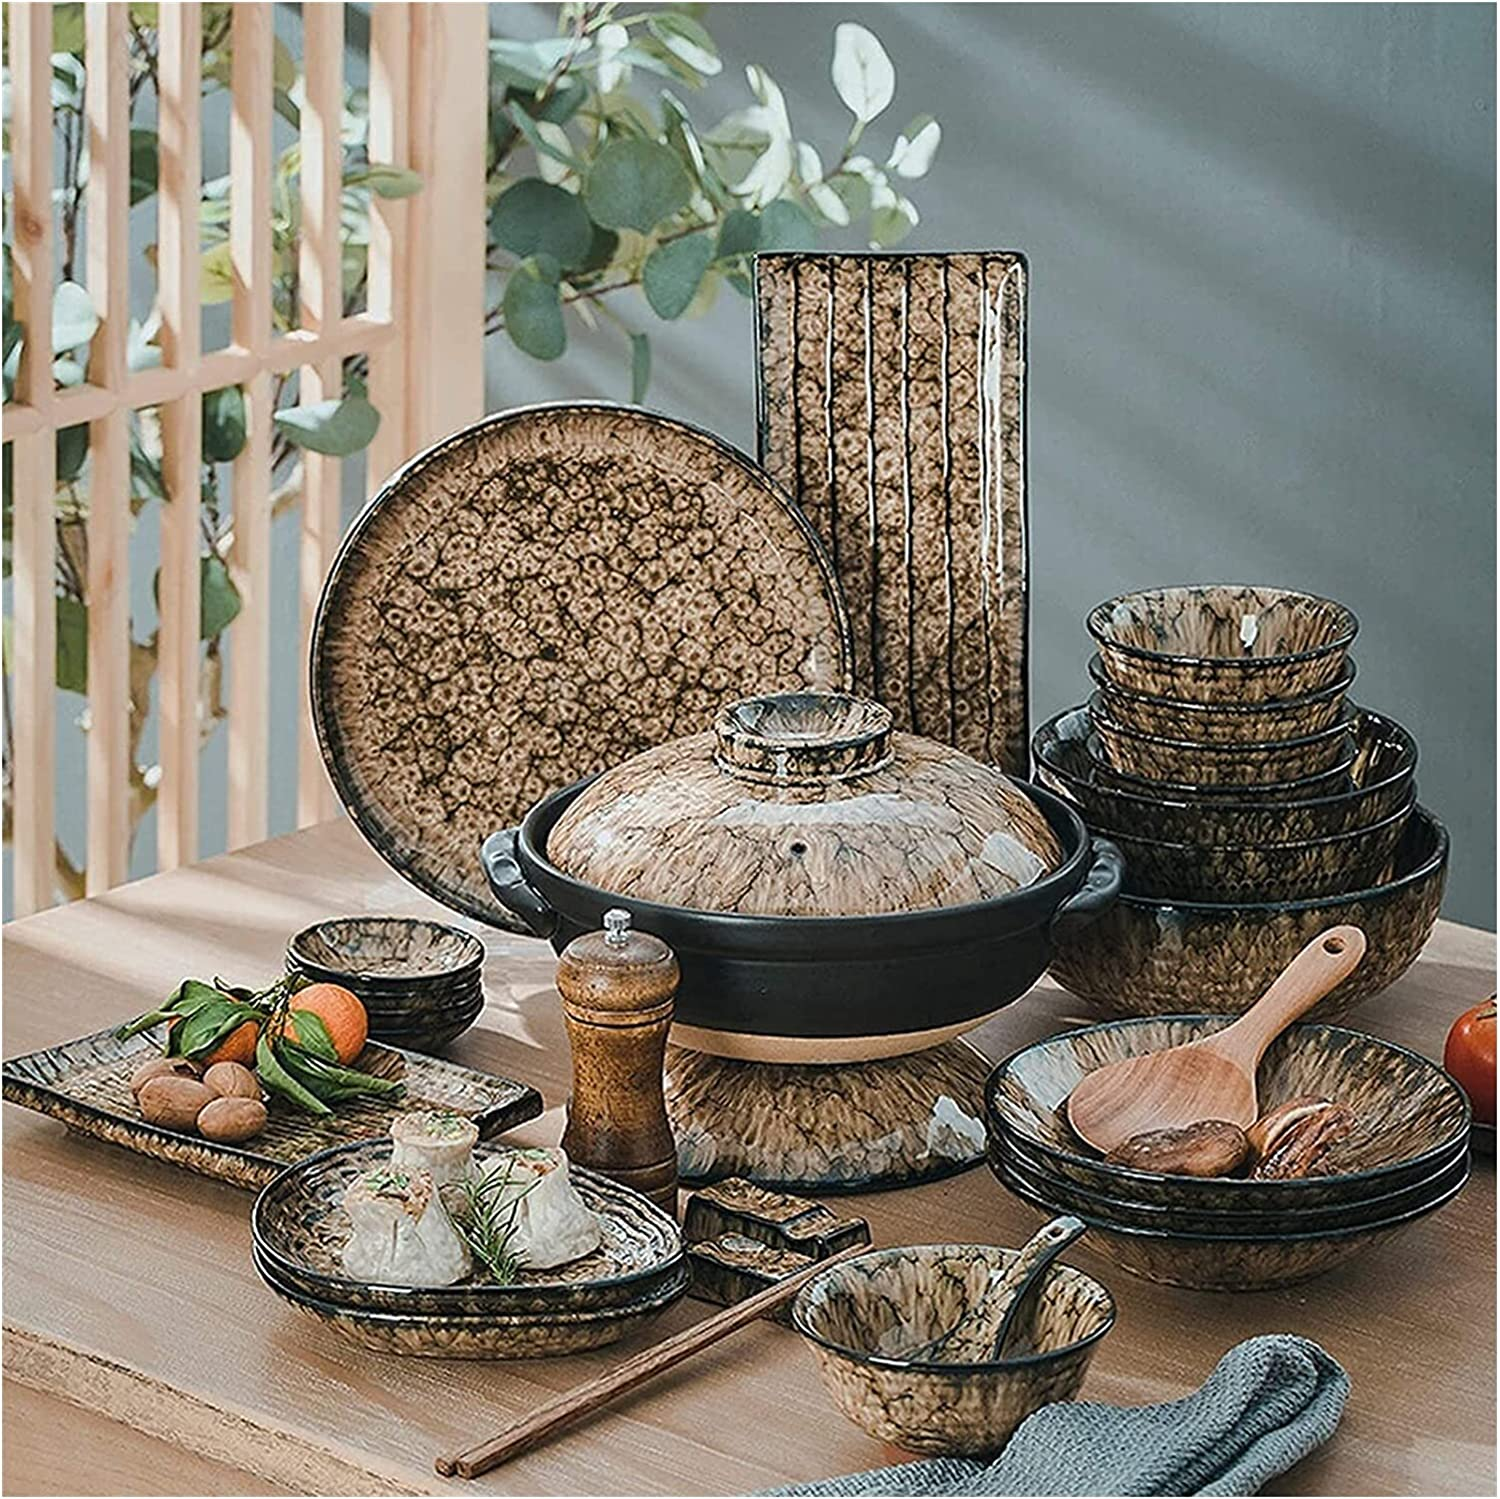 Dinnerware Set Purchase for Home or S Ceramics Lowest price challenge Restaurant Special Dinner